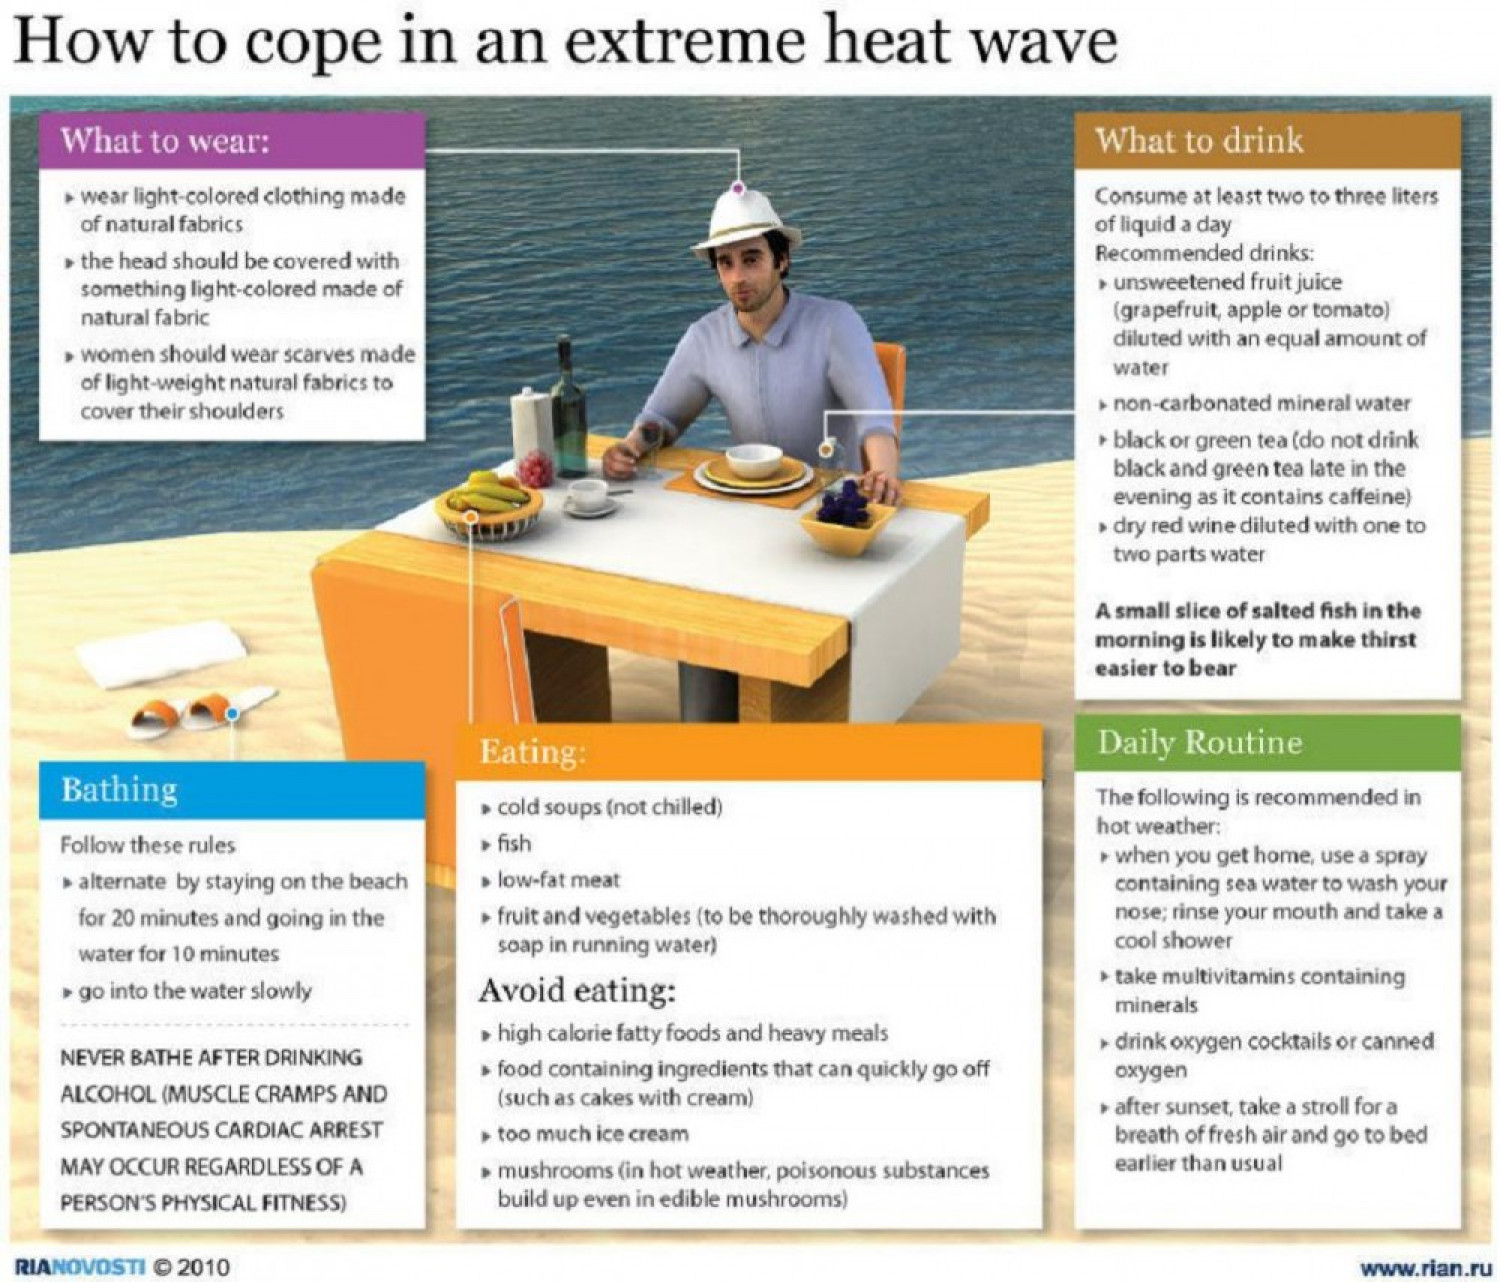 How to Cope in an Extreme Heat Wave Infographic